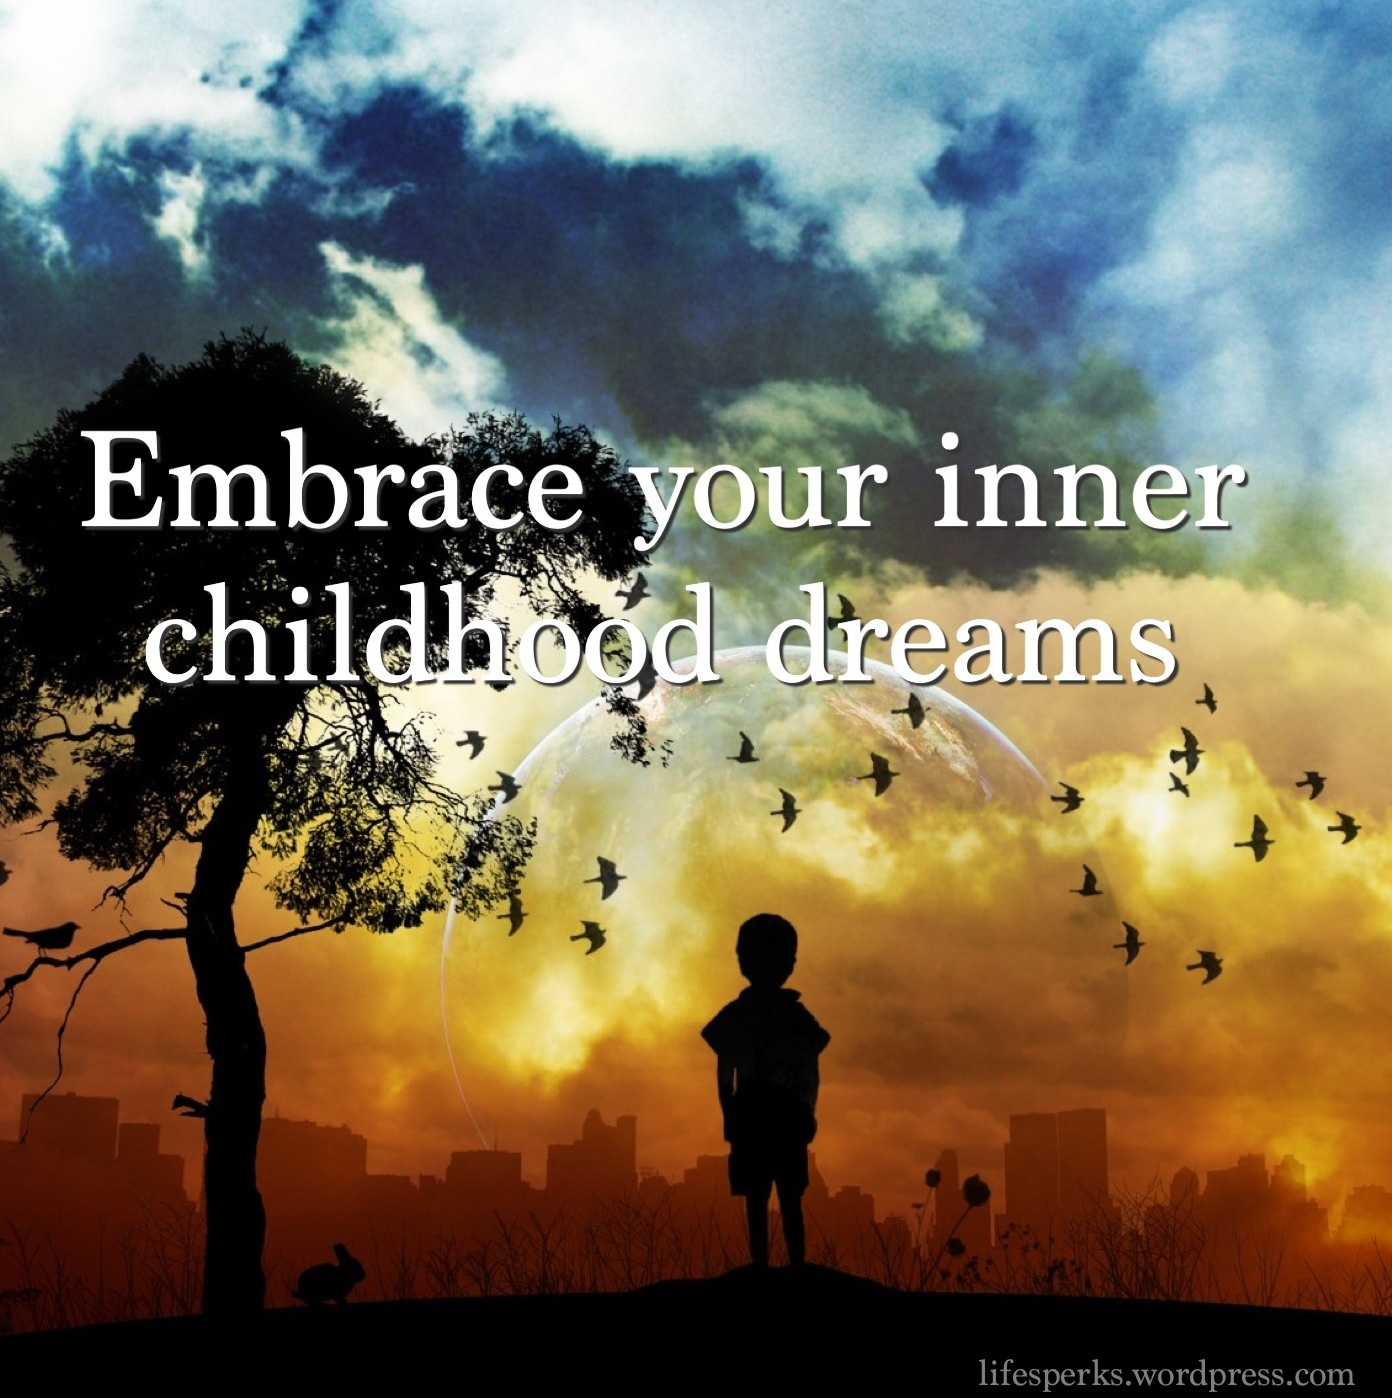 Embrace your inner childhood dreams.